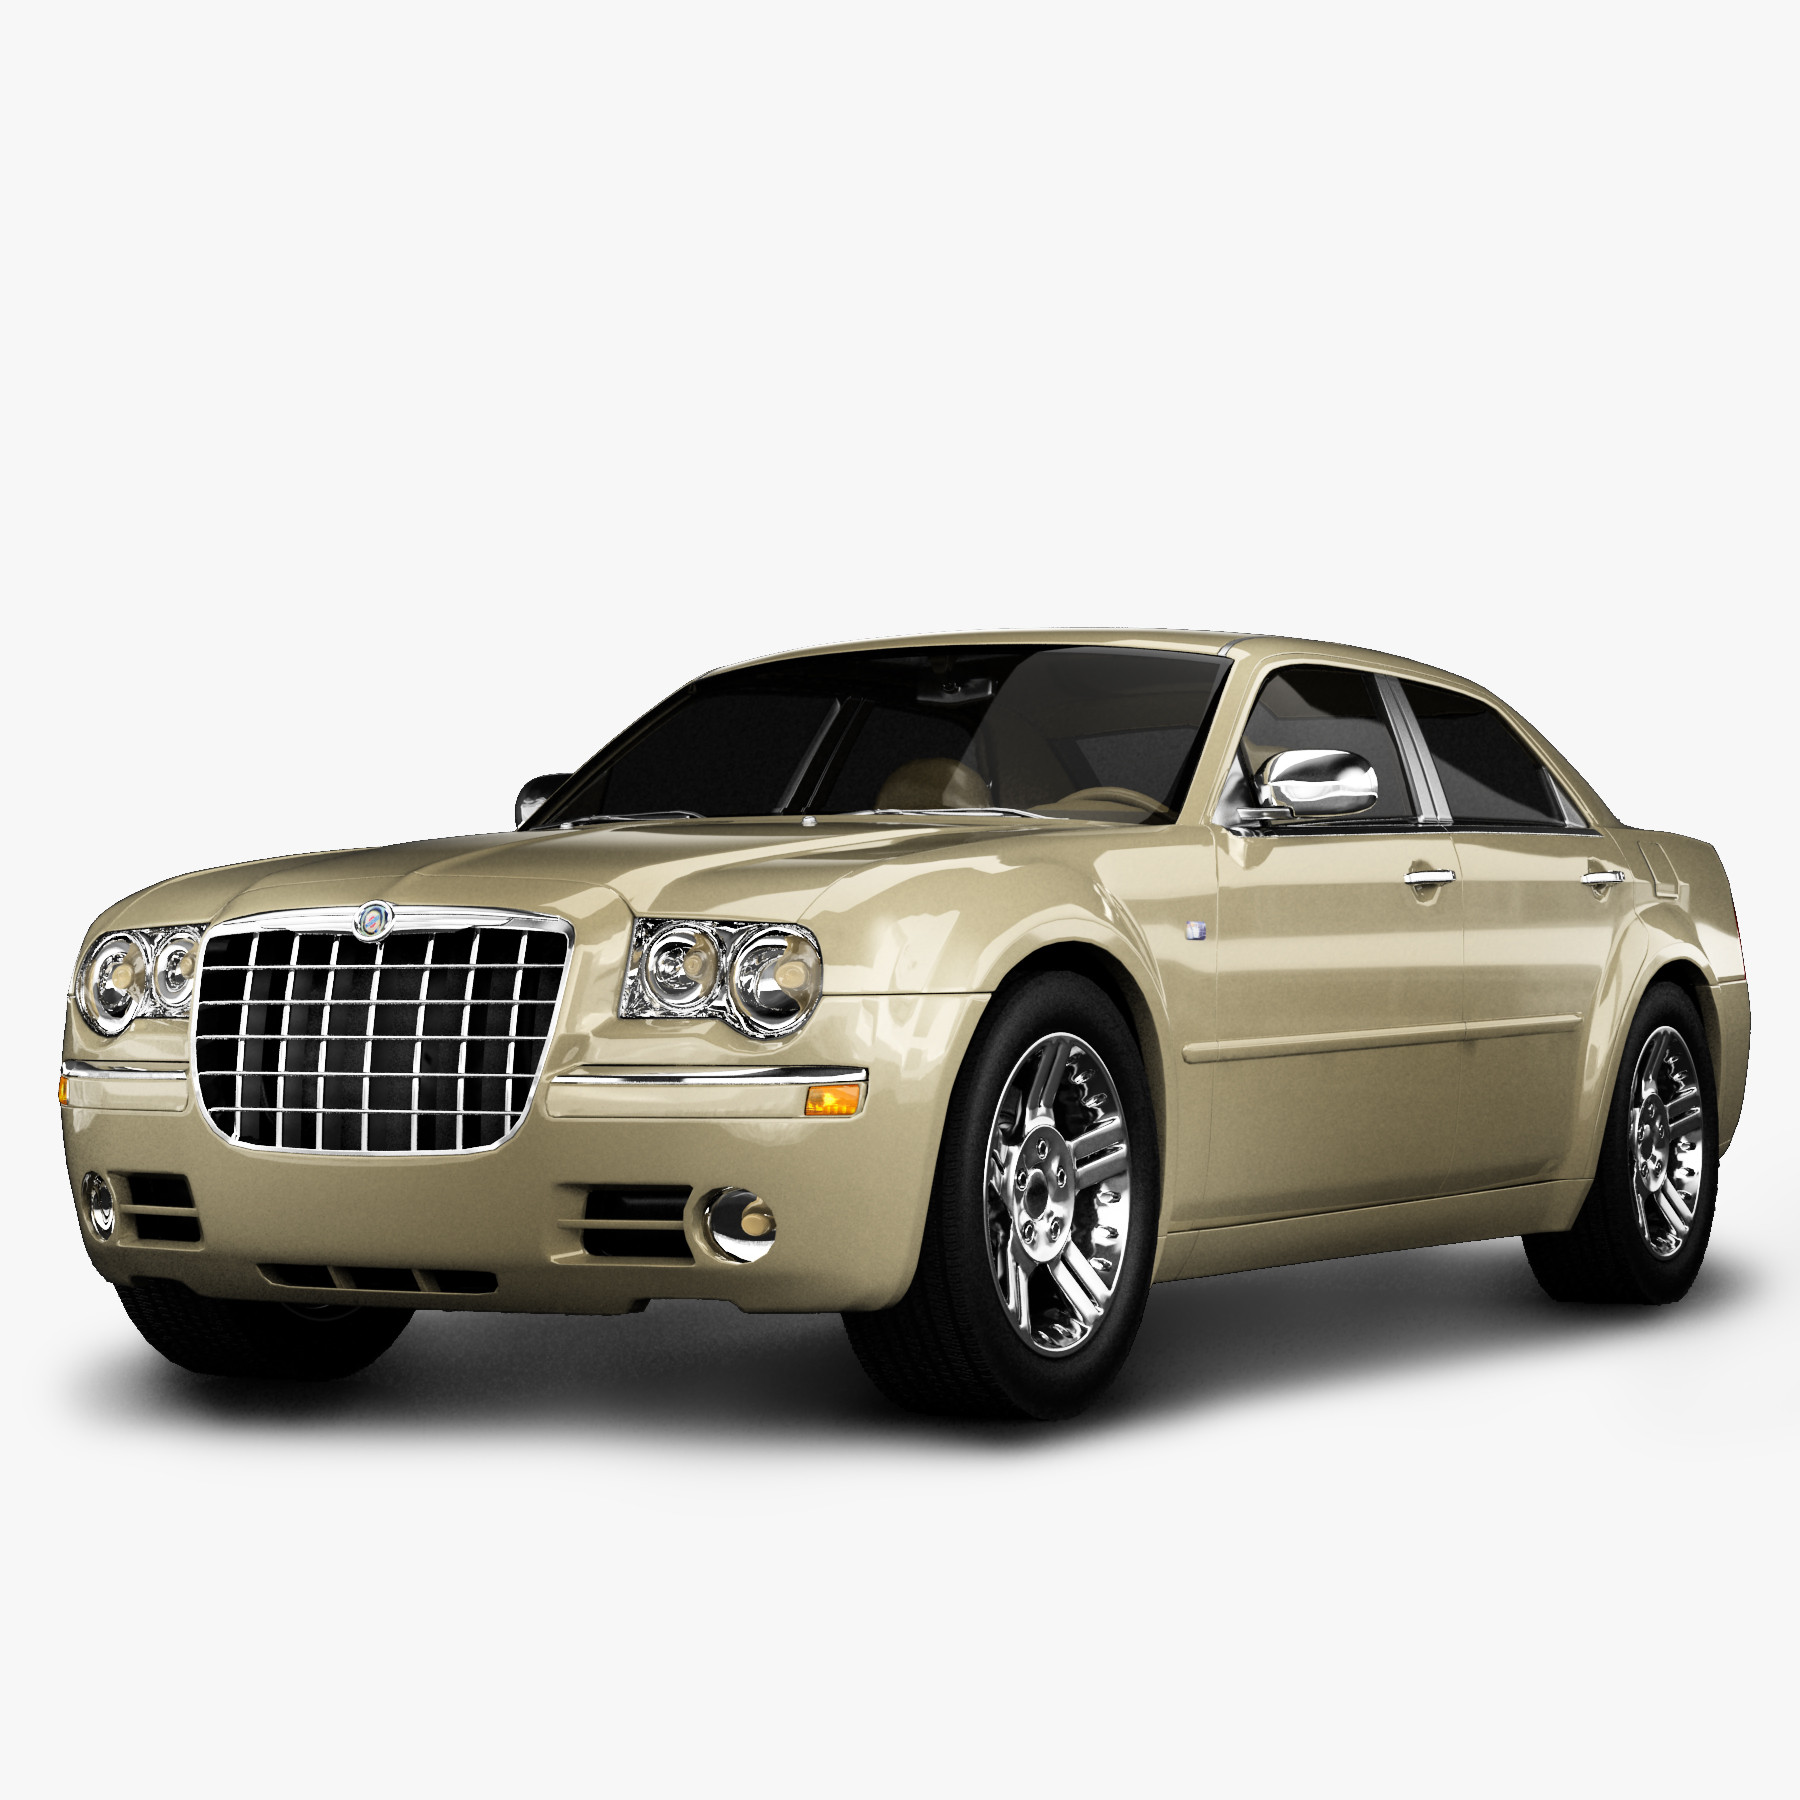 00 Chrysler 300_View010000.jpg